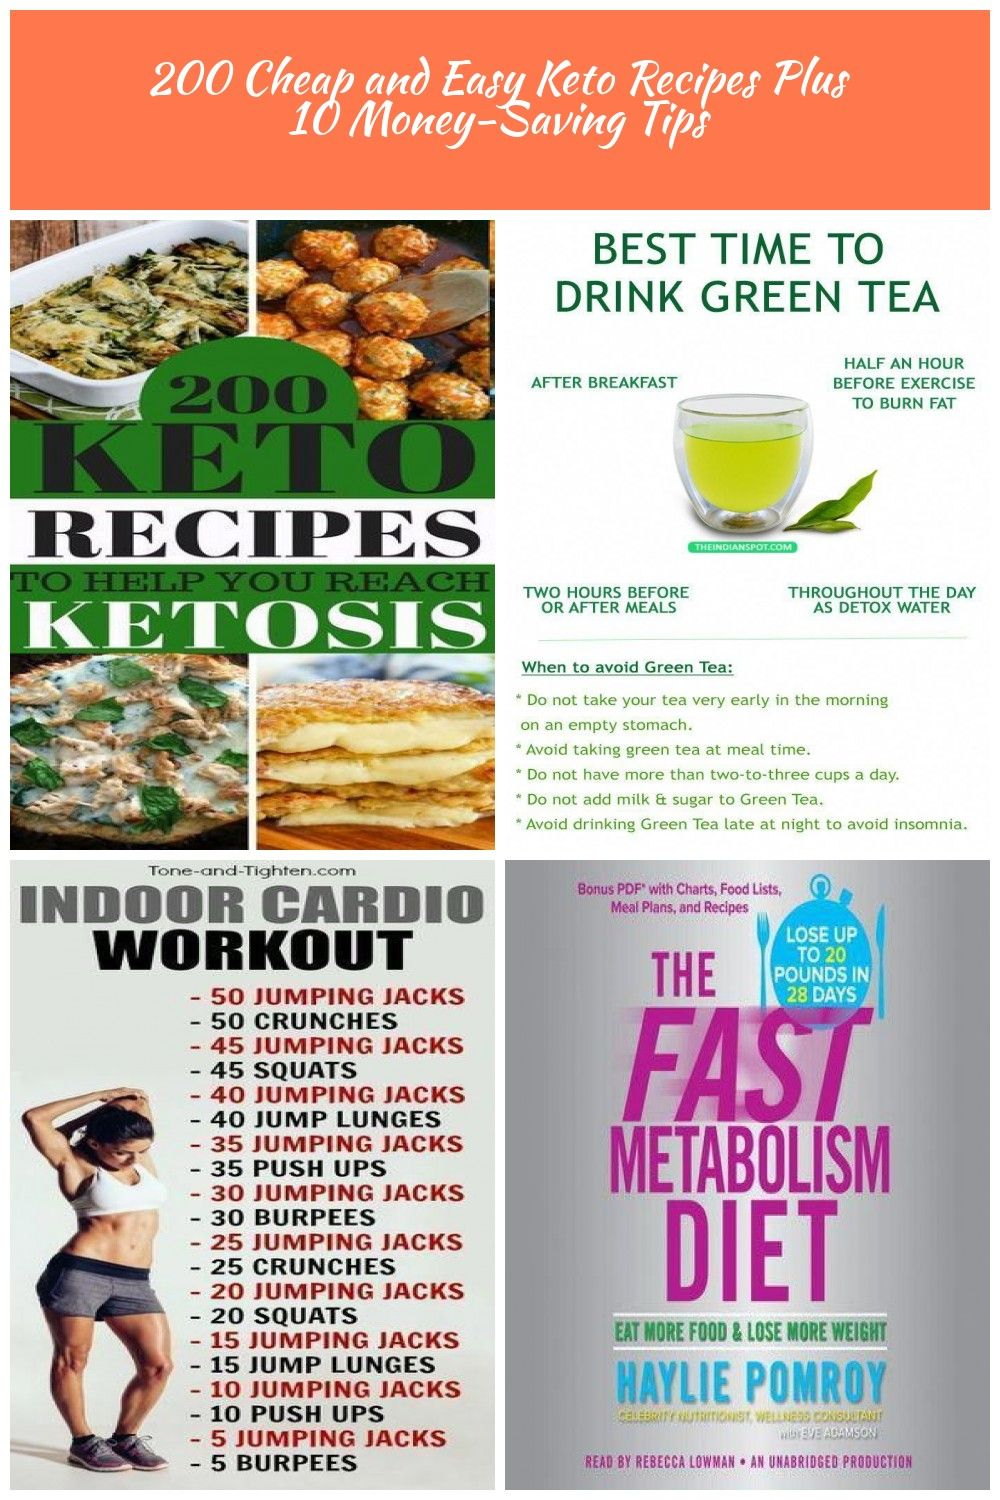 Wow Loving This List Of Keto Recipes I Ve Been Looking For Some And This Is The Best List Korean Diet Plan 200 Ch Cheap Easy Meals Keto Recipes Easy Recipes